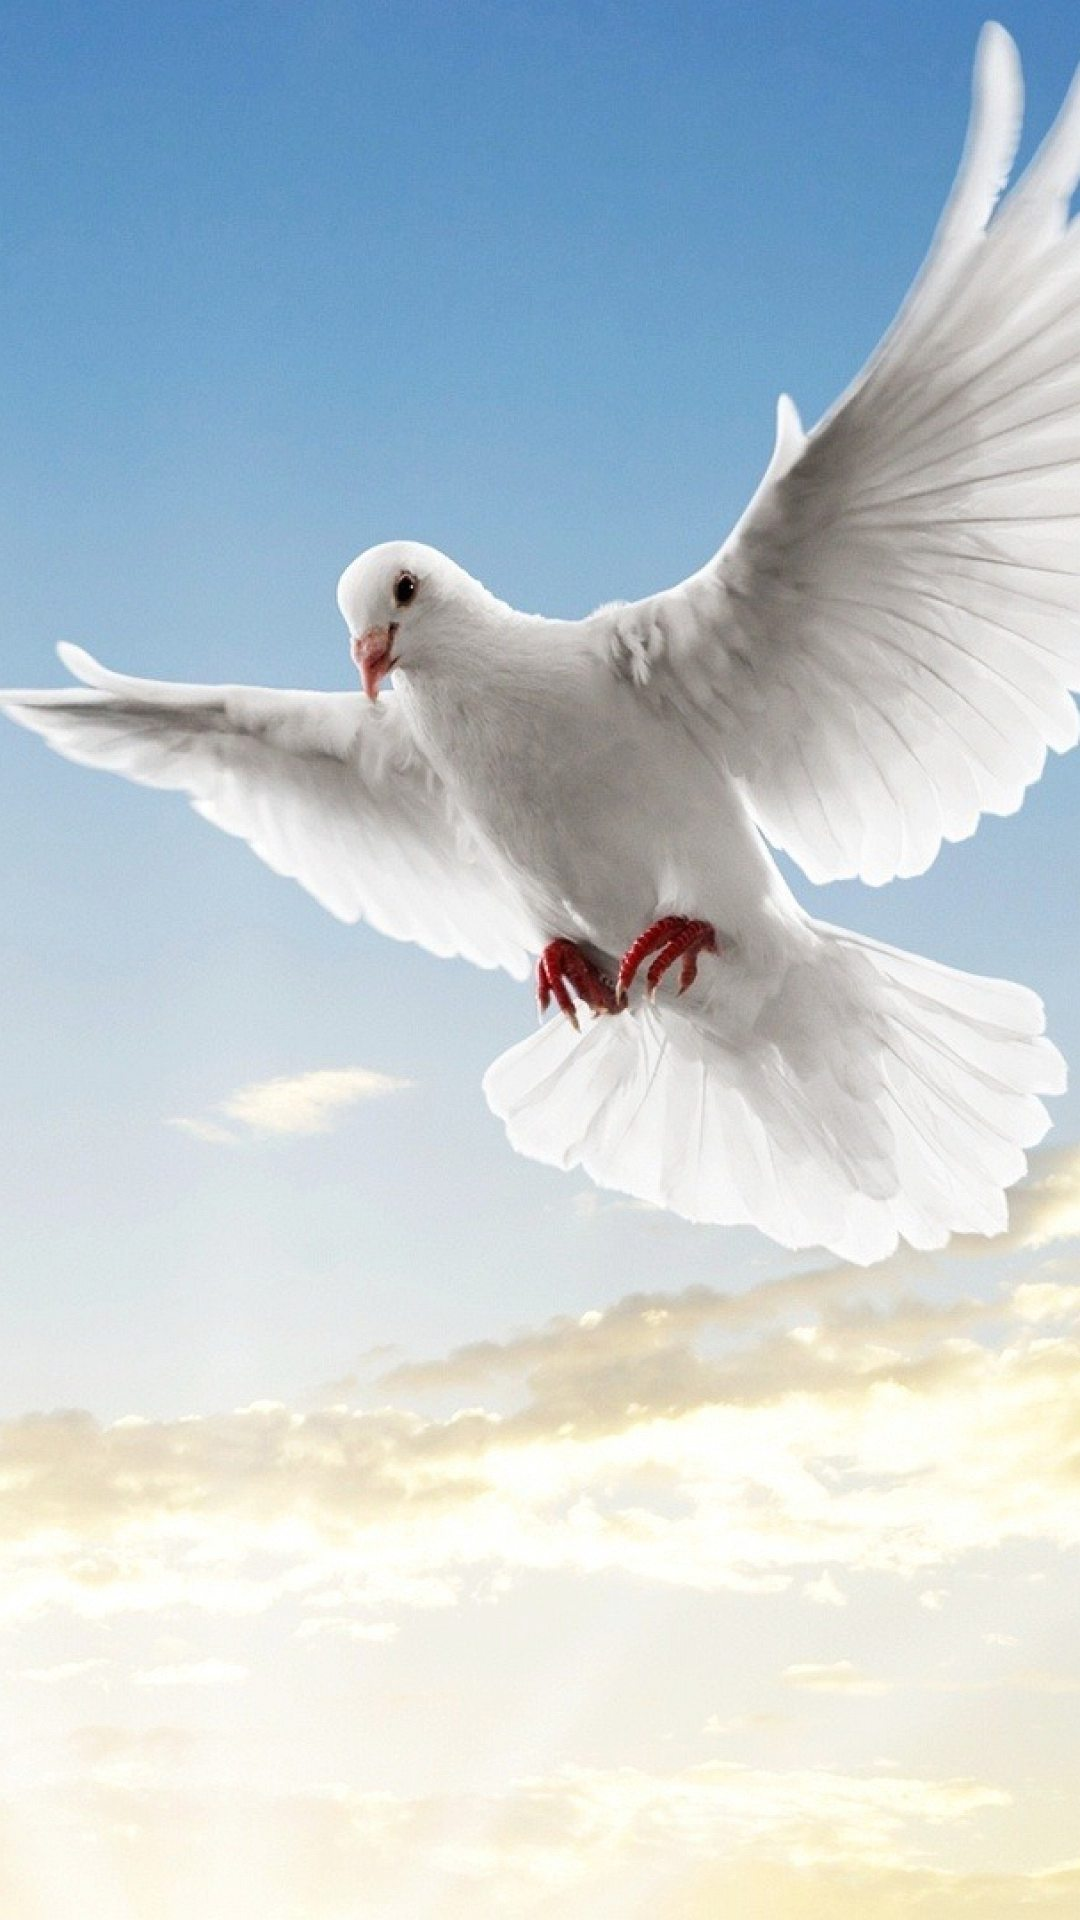 dove peace symbol best htc one wallpapers free and easy